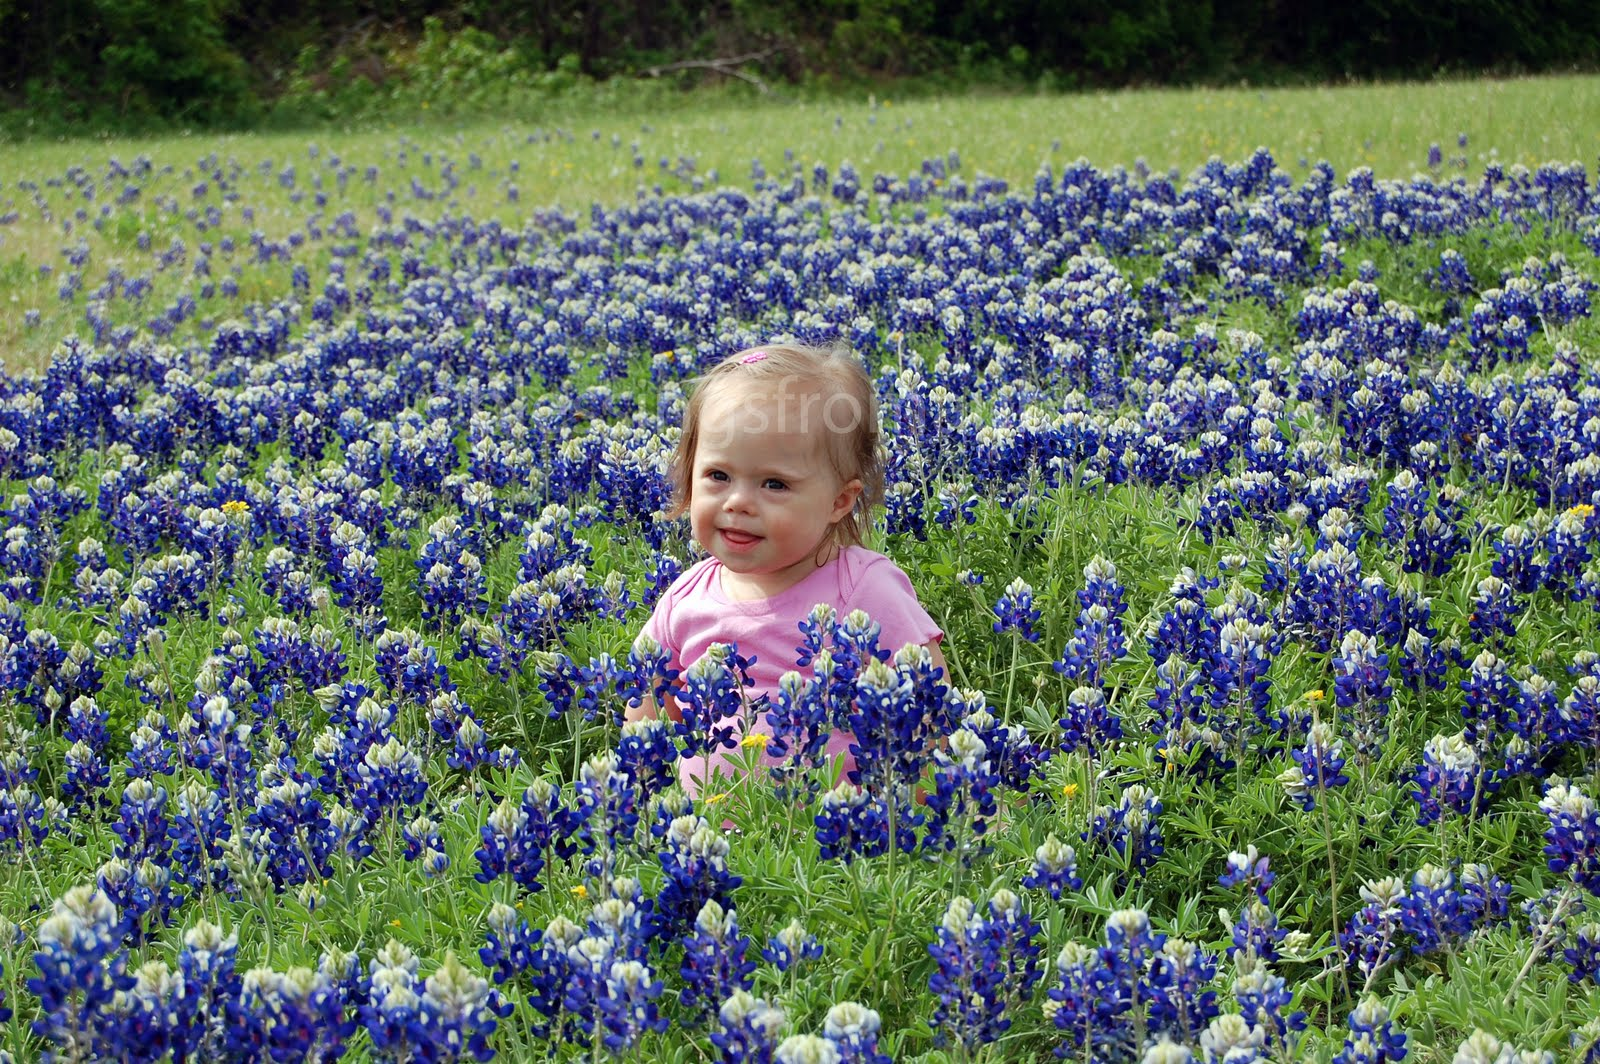 Bluebonnets Texas Hill Country Sunset | 2017 - 2018 Best Cars Reviews